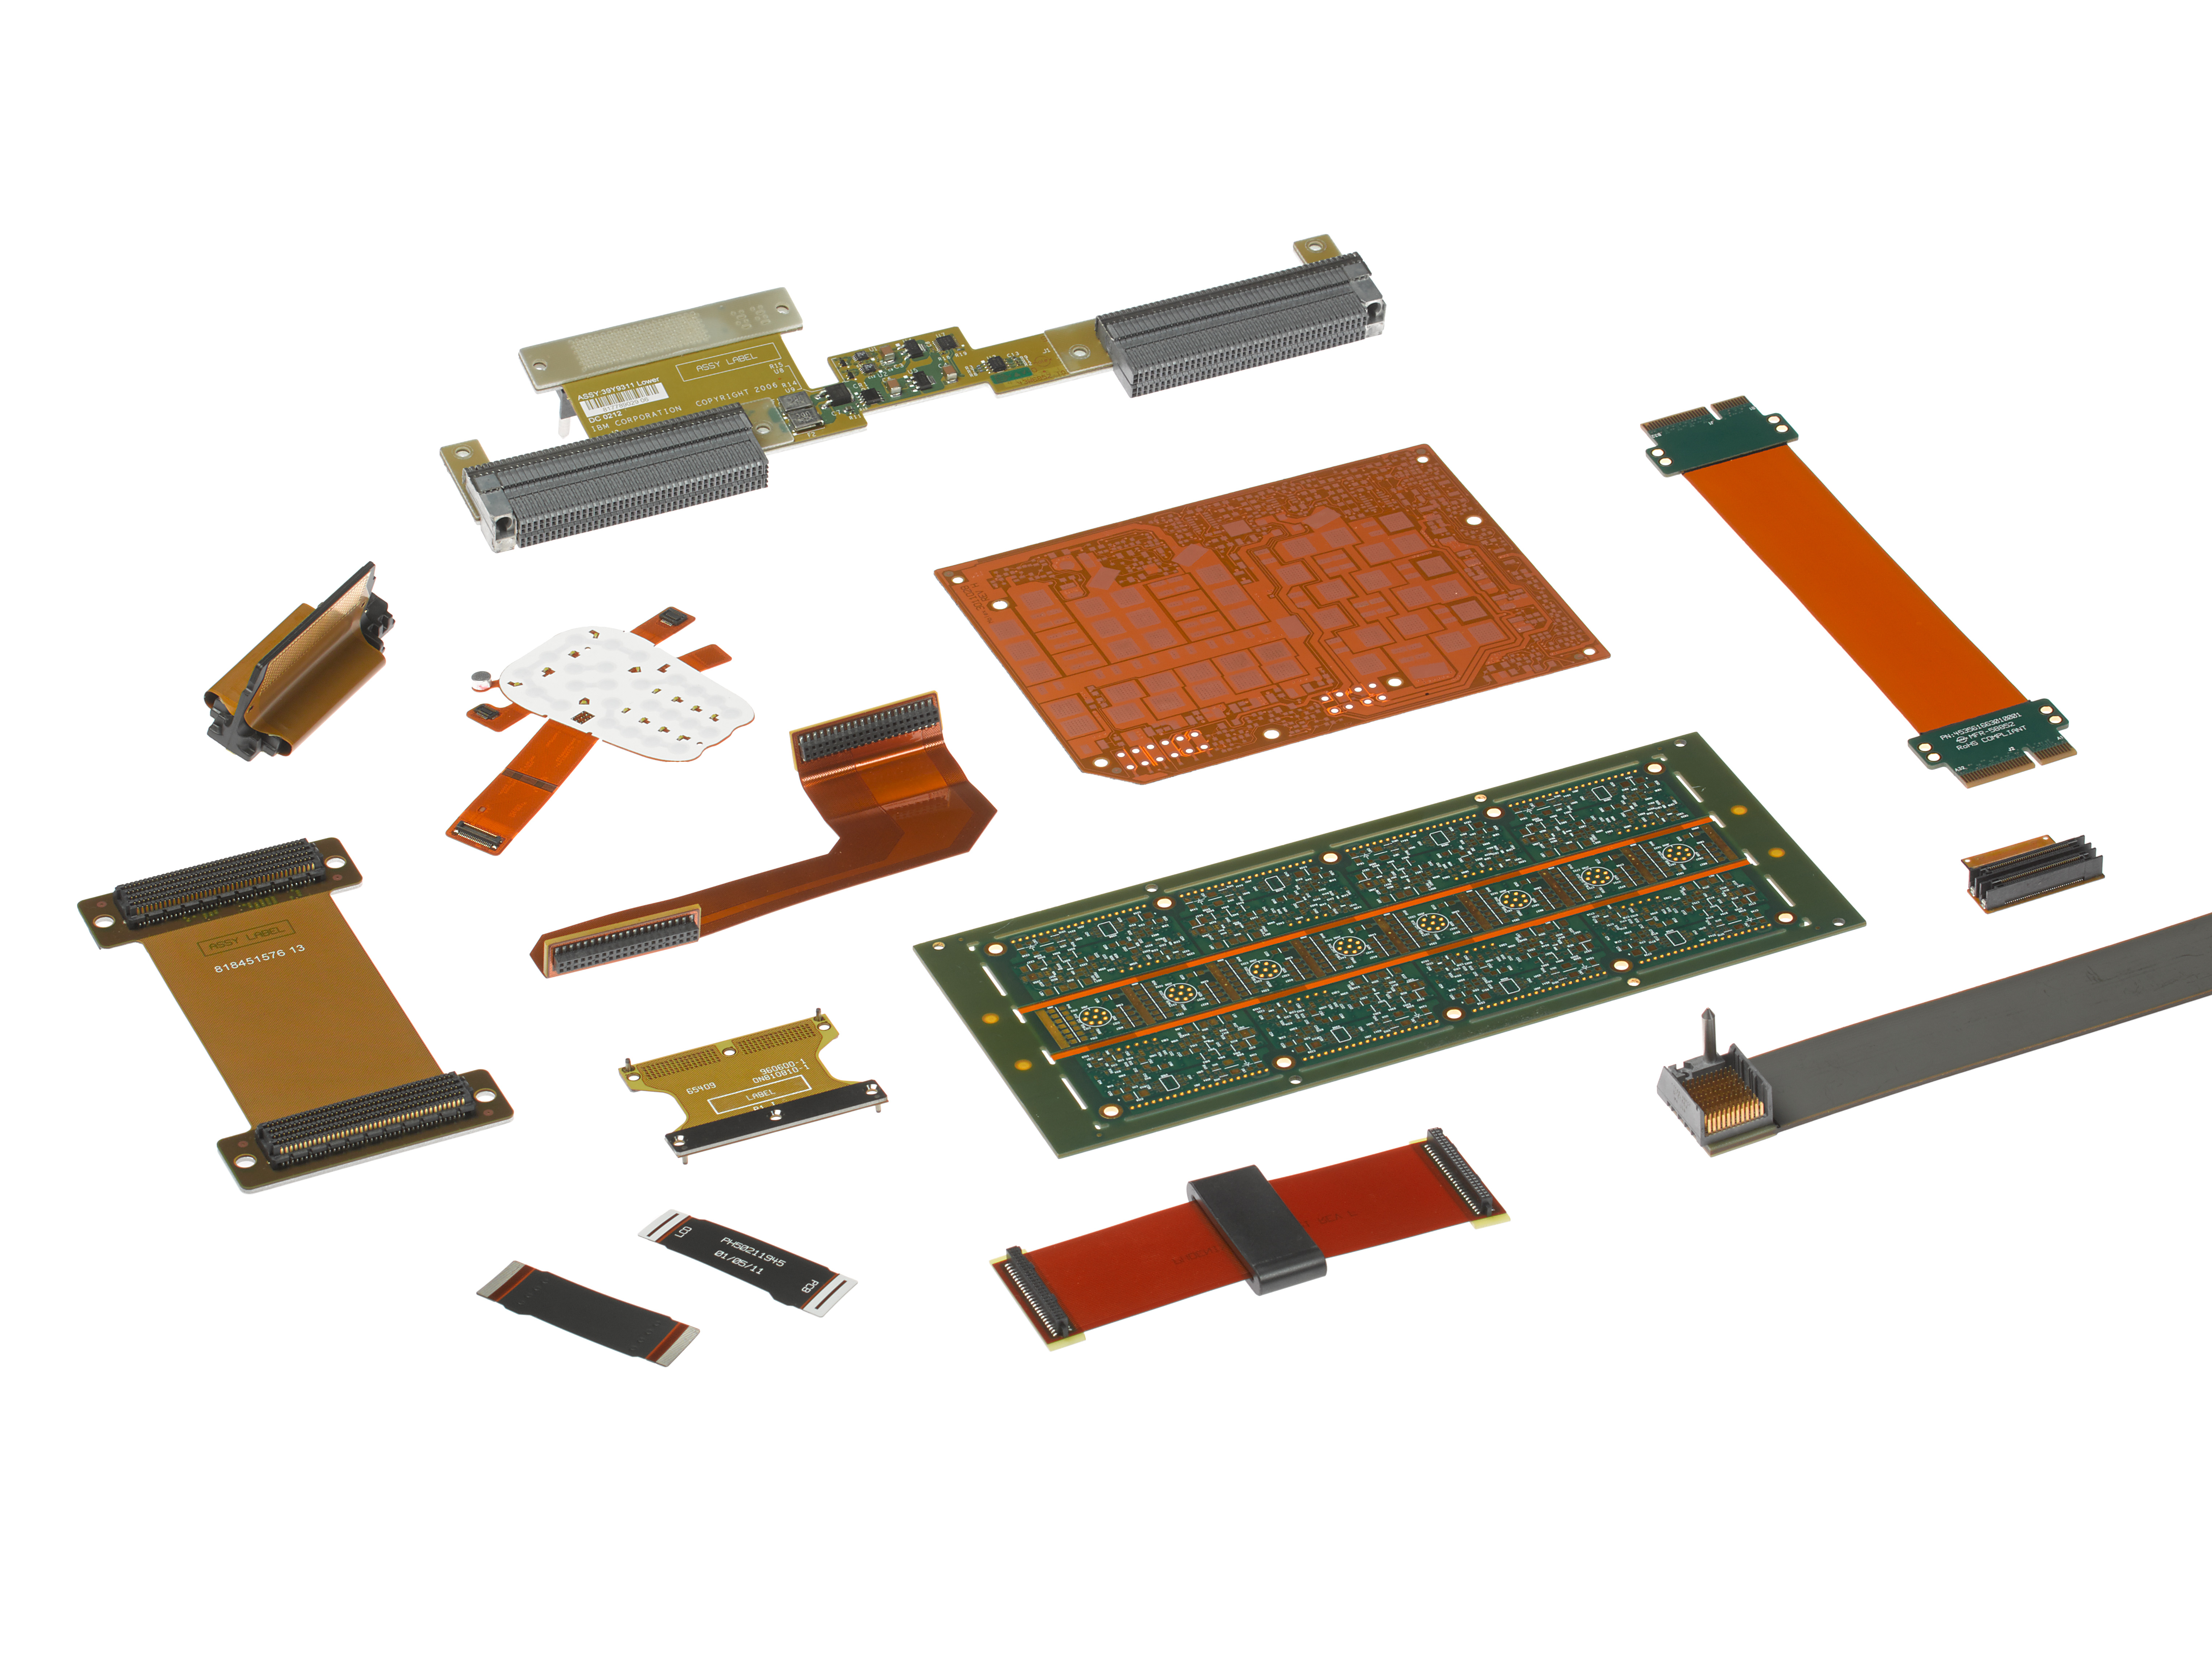 Flexible 3d Circuits Power Medical Devices The Connector By Molex Atx Supply Schematic Diagram Additionally Polyimide Material Used In Their Fabrication Dissipates Heat Better Than Standard Pcb Materials As A Result Flex Circuit Requires Less Cooling